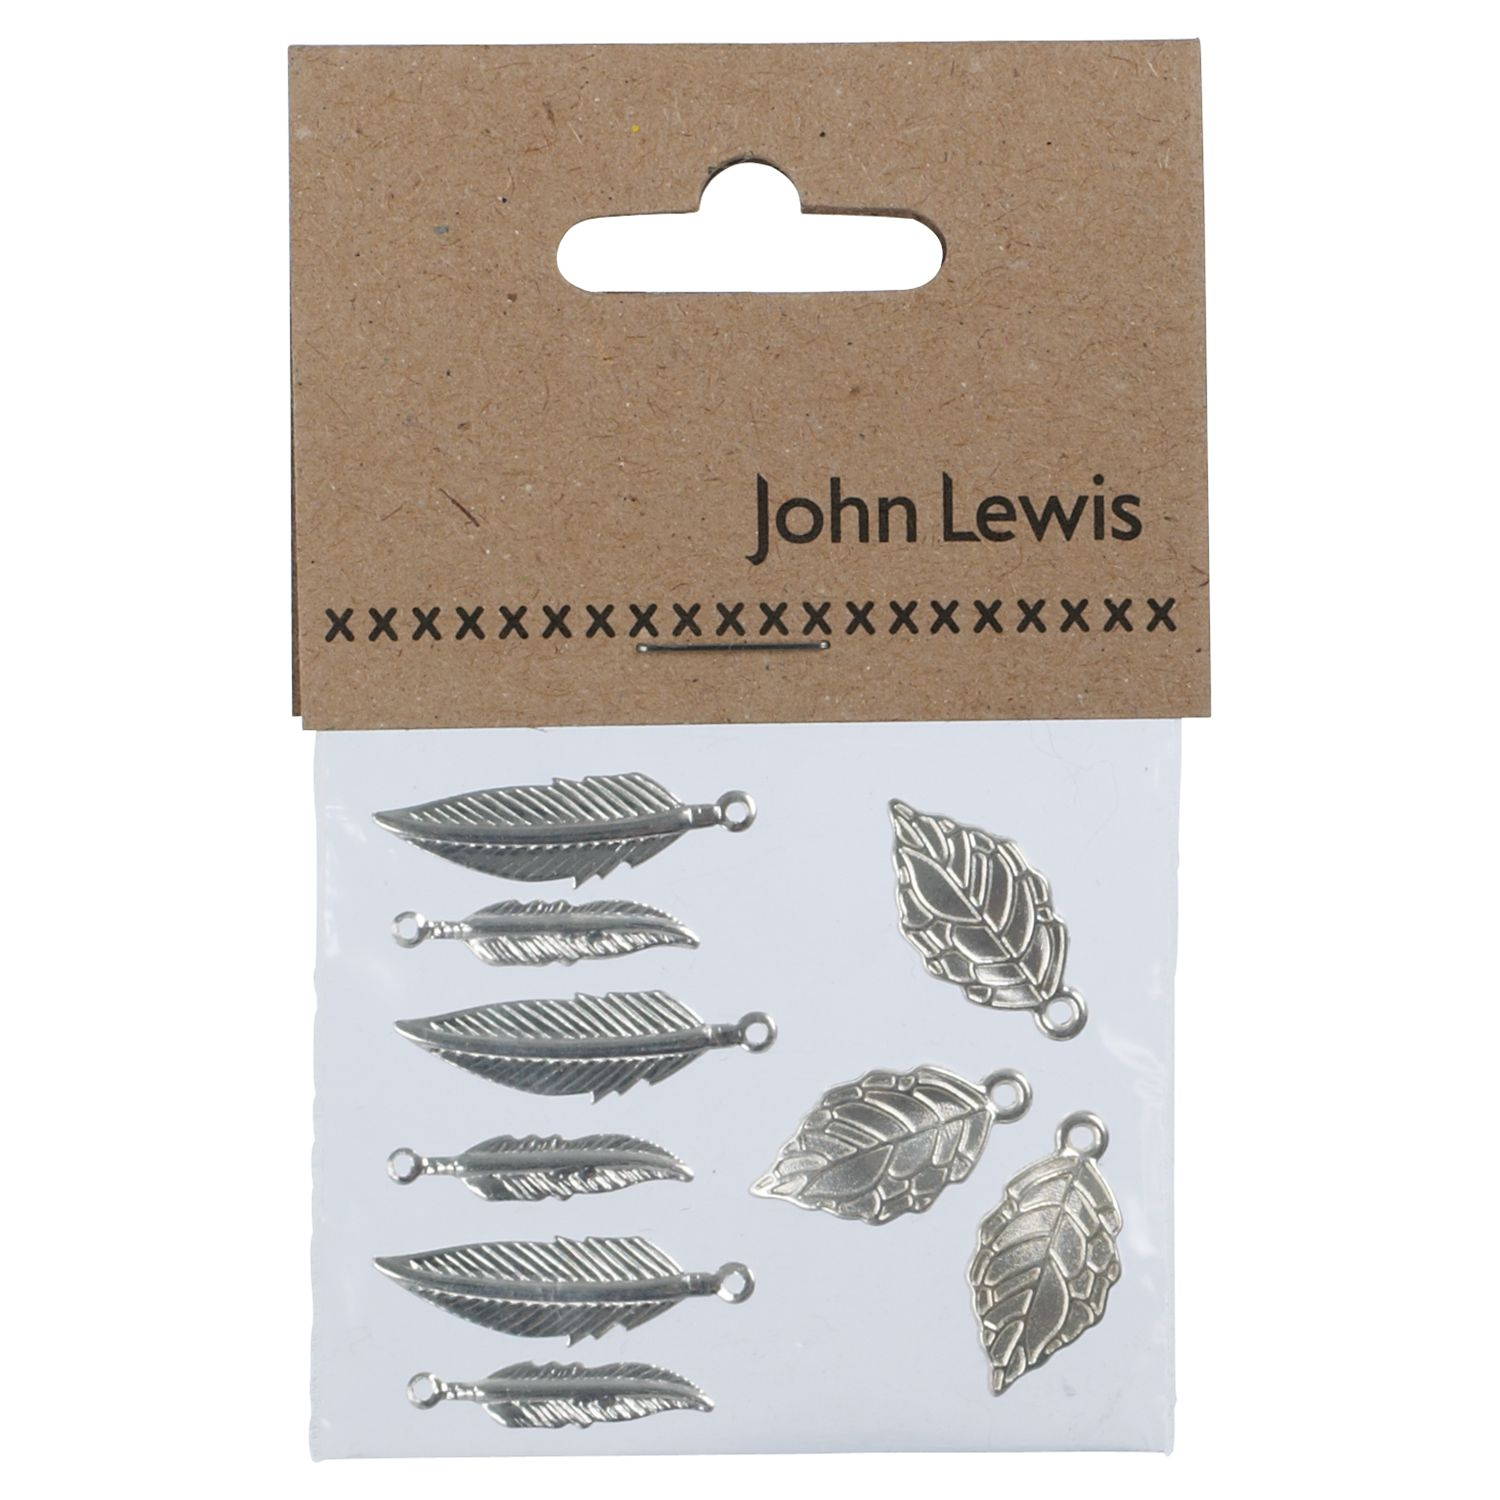 John Lewis Feather and Leaf Charms, Pack of 6, Silver Plated